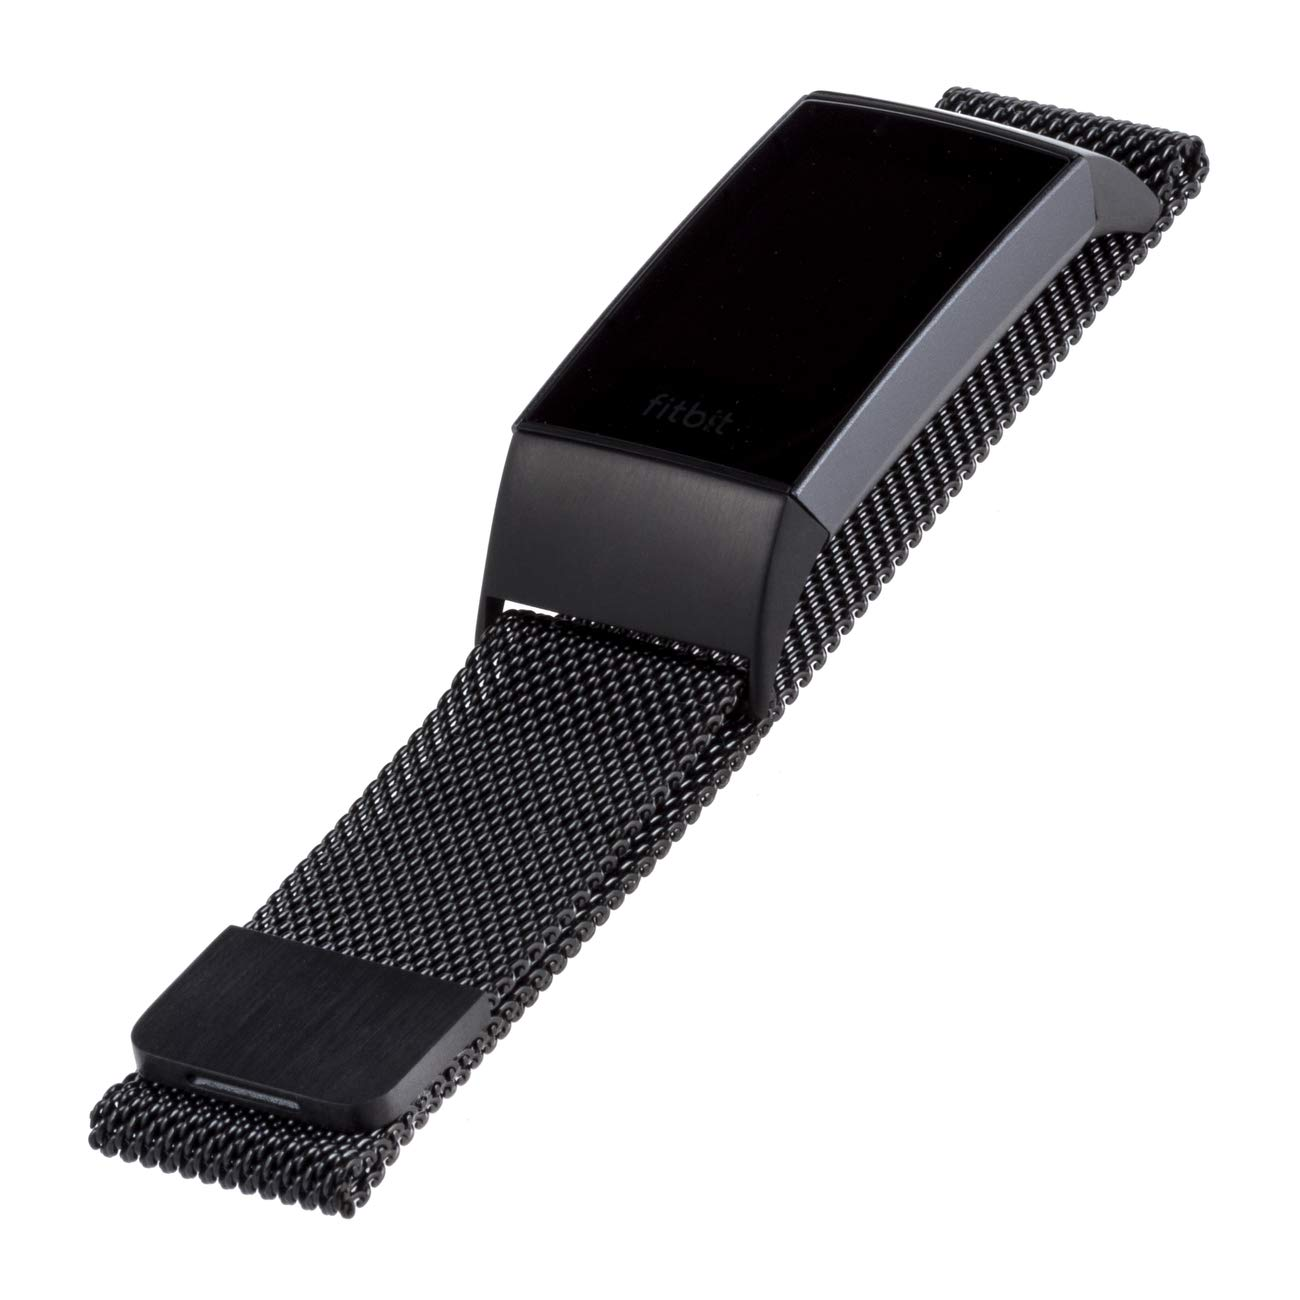 WITHit Designer Stainless Steel Mesh Fitbit Charge 3 Band, Black - Secure, Adjustable, Fitbit Watch Band Replacement with Magnetic Closure, Fits Most Wrists, Sweat-Resistant Accessories by WITHit